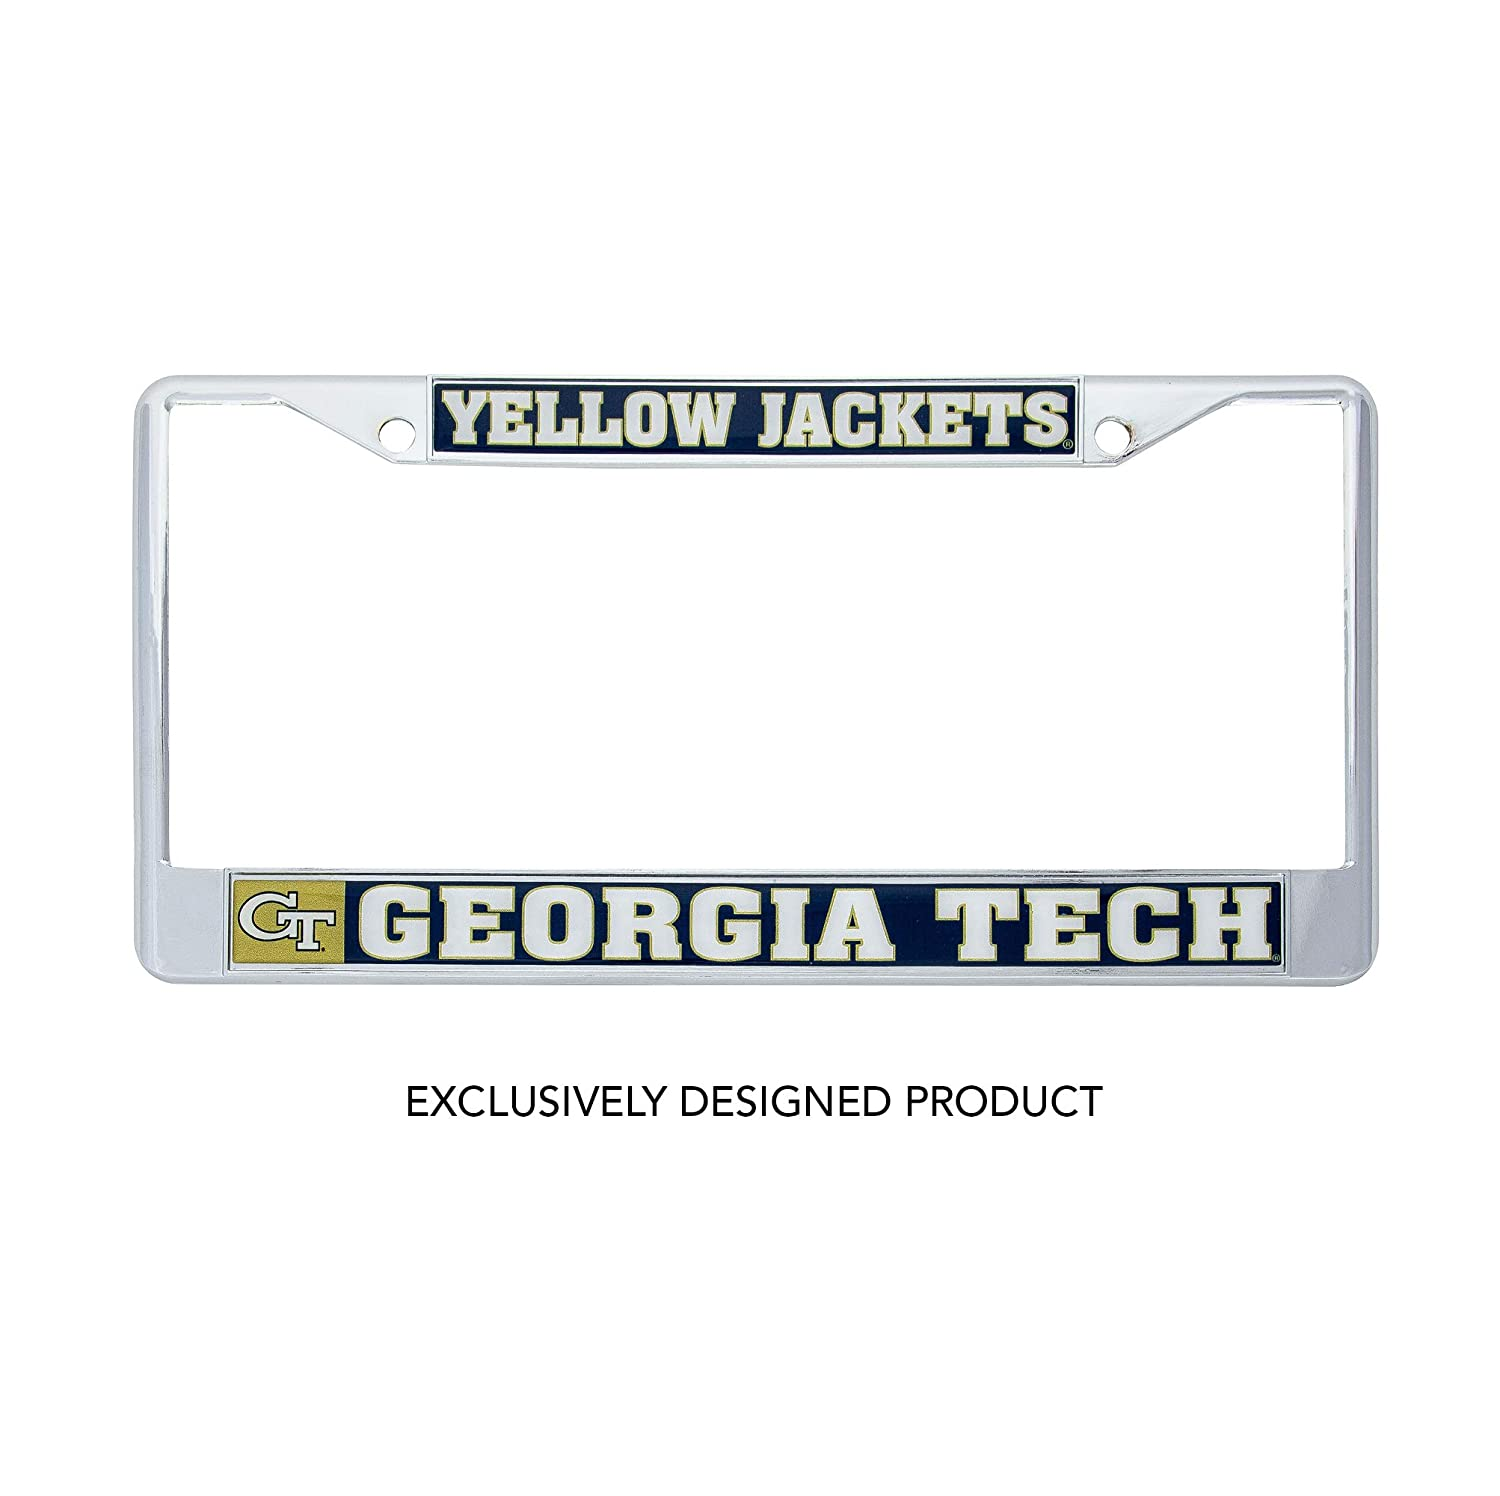 Desert Cactus Georgia Tech Yellow Jackets Metal License Plate Frame for Front Back of Car Officially Licensed Mascot